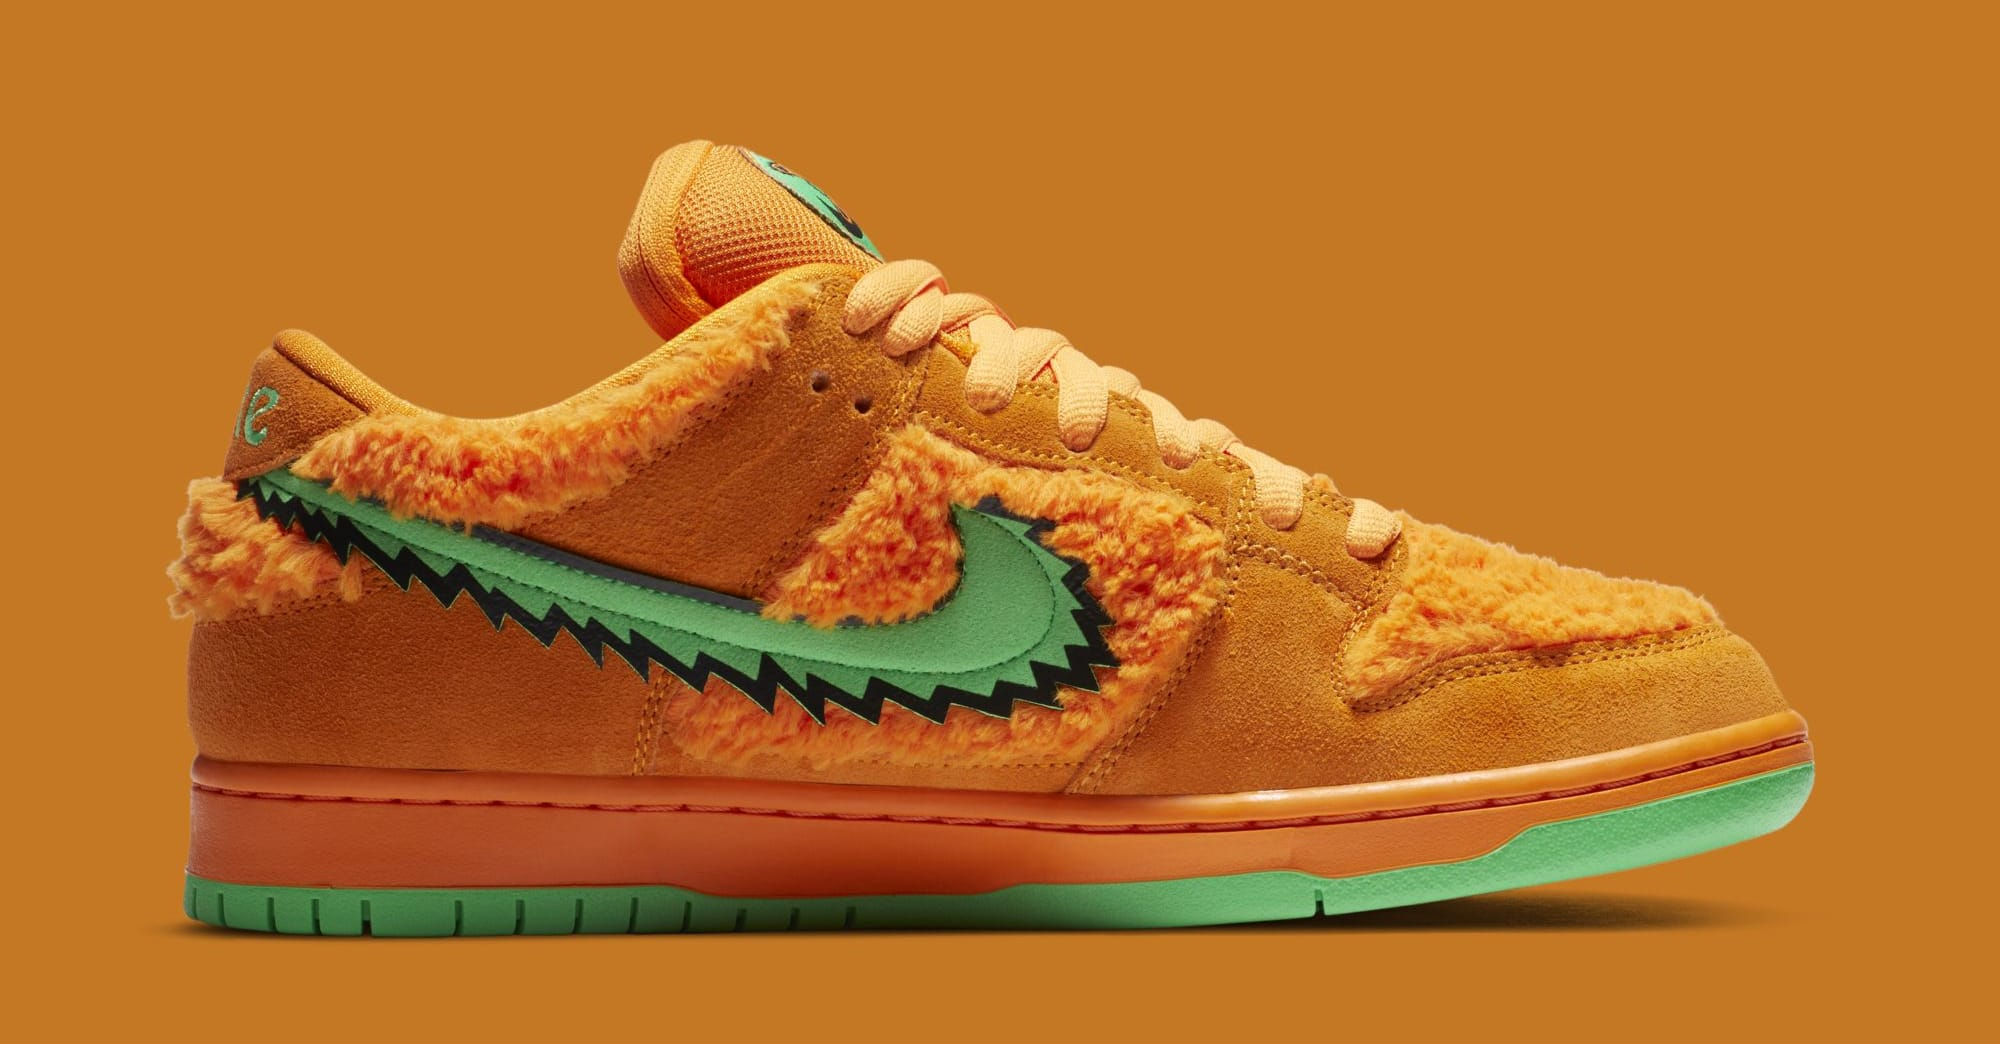 Grateful Dead x Nike SB Dunk Low 'Orange' CJ5378-800 (Medial)